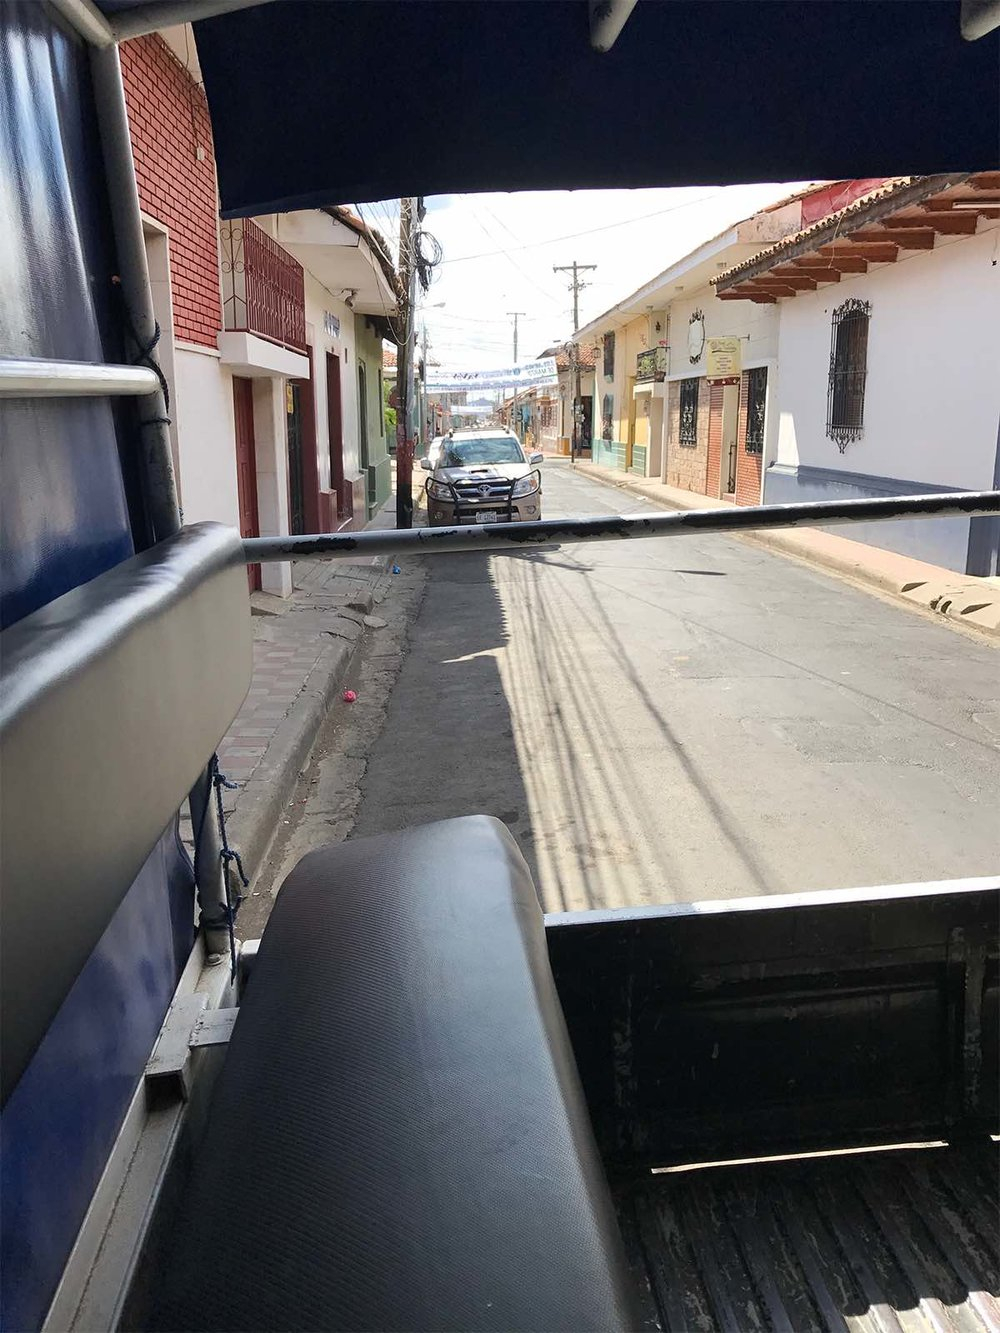 vehicle for volcano boarding in Nicaragua